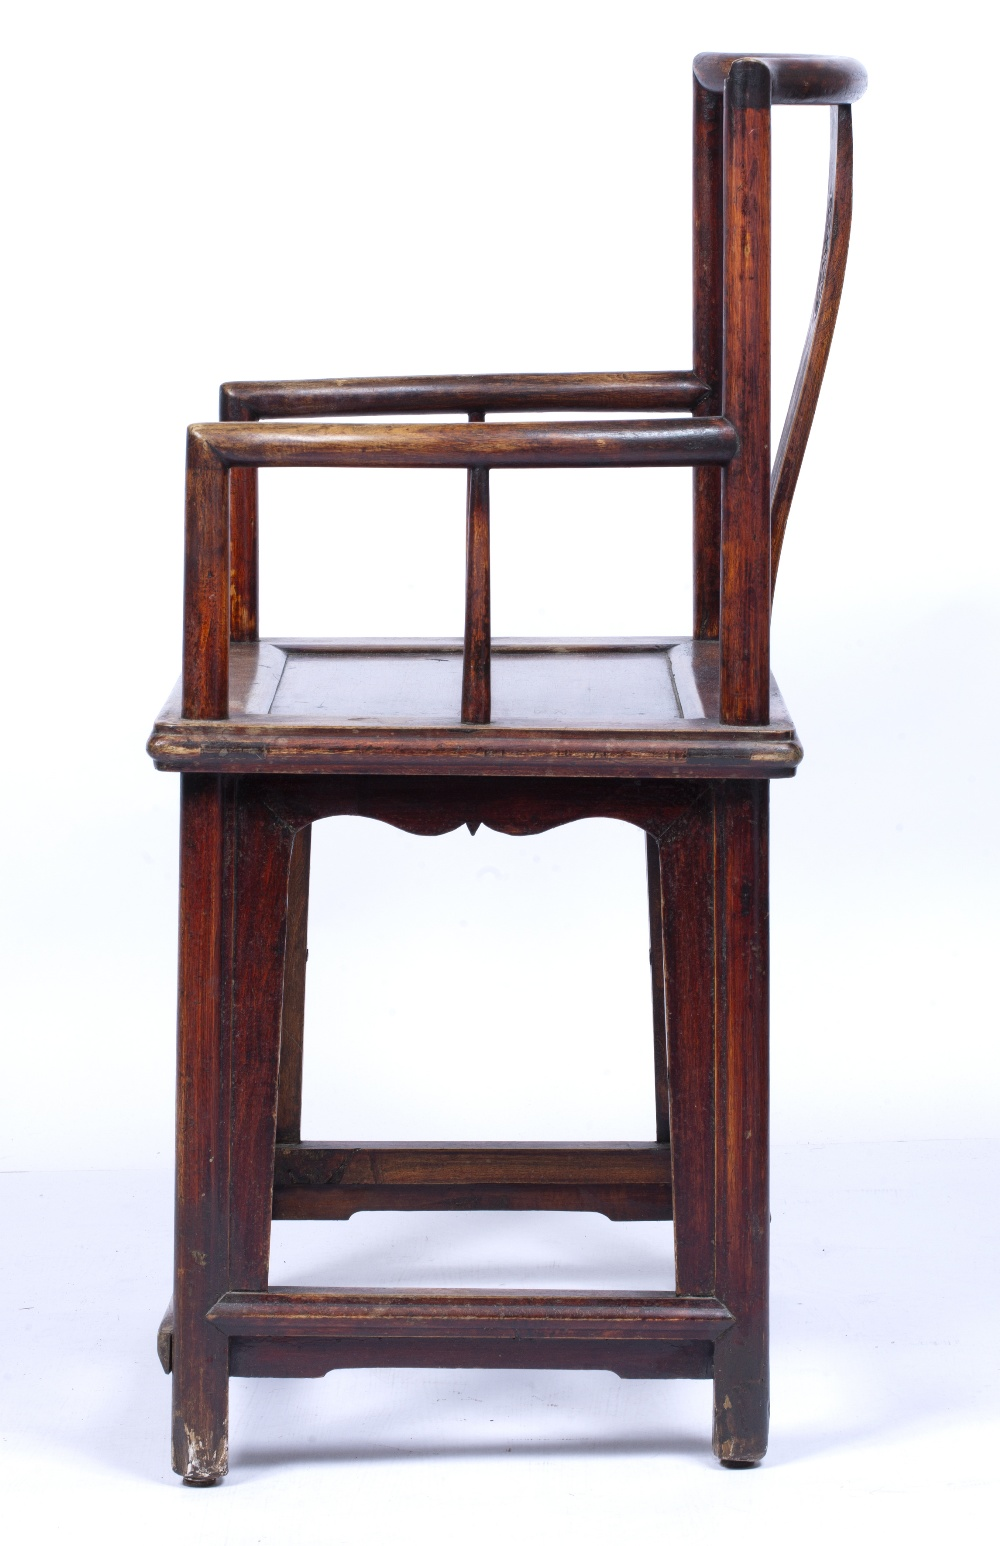 Ming style throne chair Chinese, 19th Century with roundel carved to the back, 95.5cm high, 57cm - Image 5 of 5